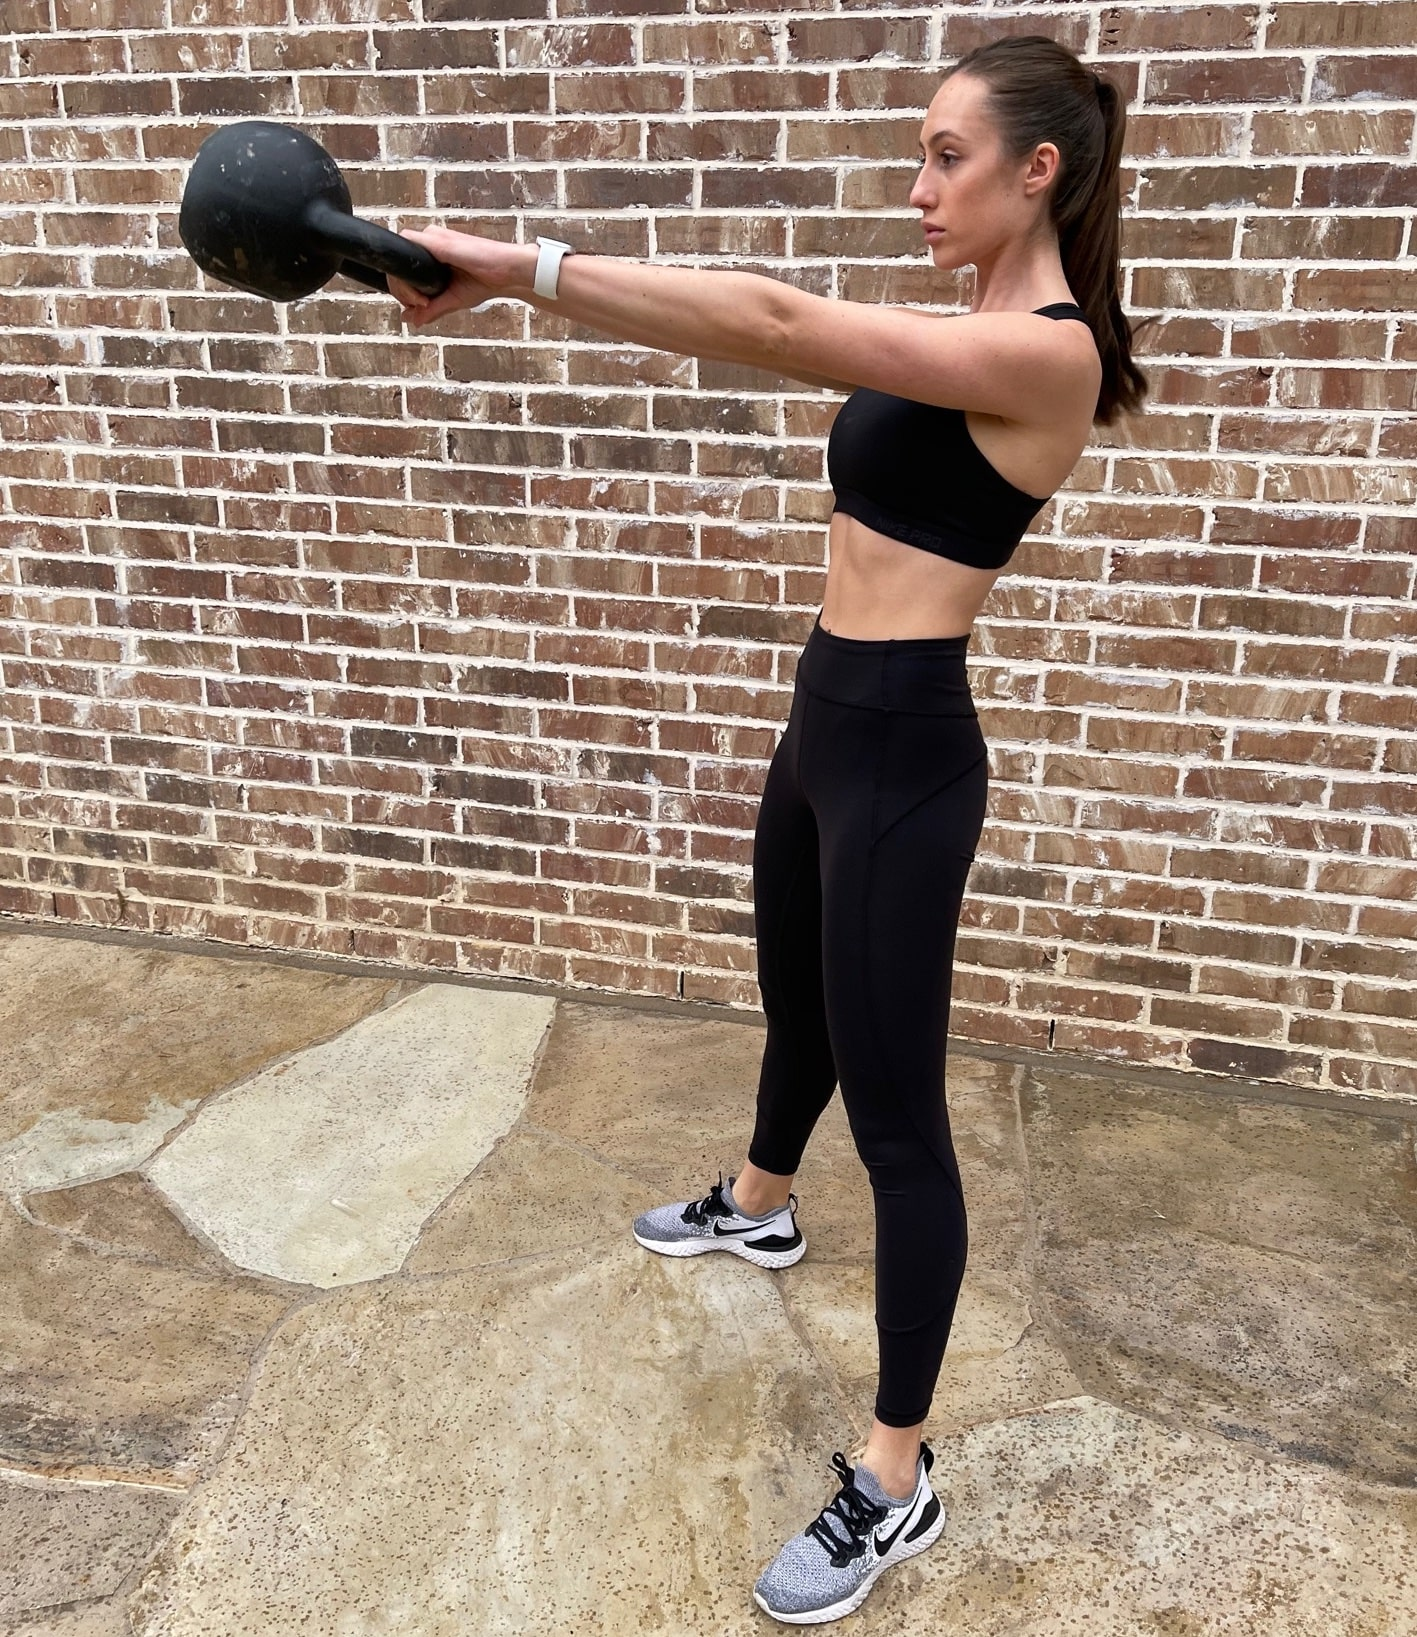 Keri Brice how to do a kettlebell swing techniques to build muscle